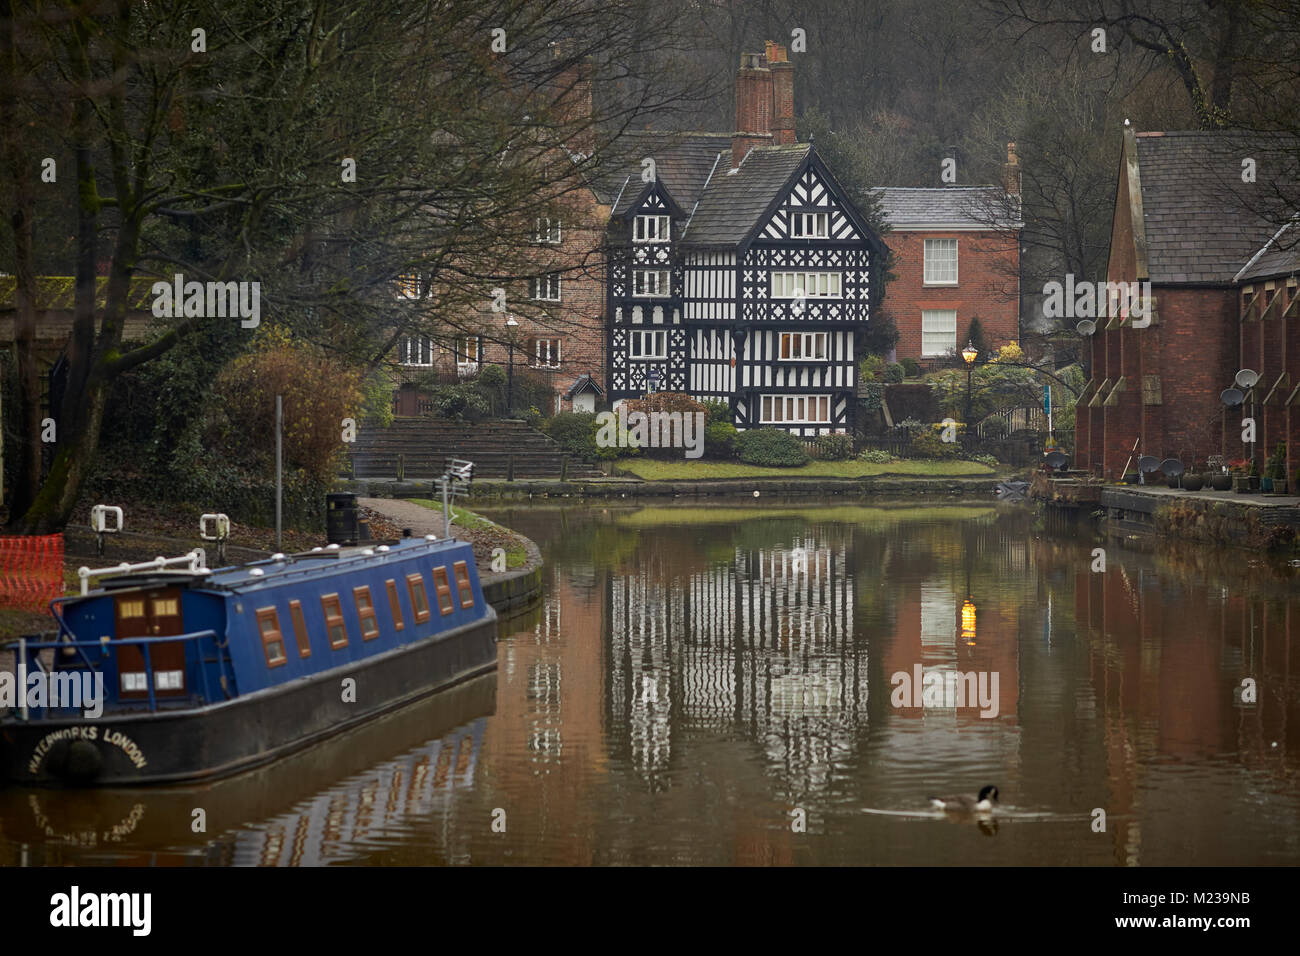 Worsely, manchester in Salford, The Packet House grade 2 listed building, and the Boat Steps directly in front of - Stock Image